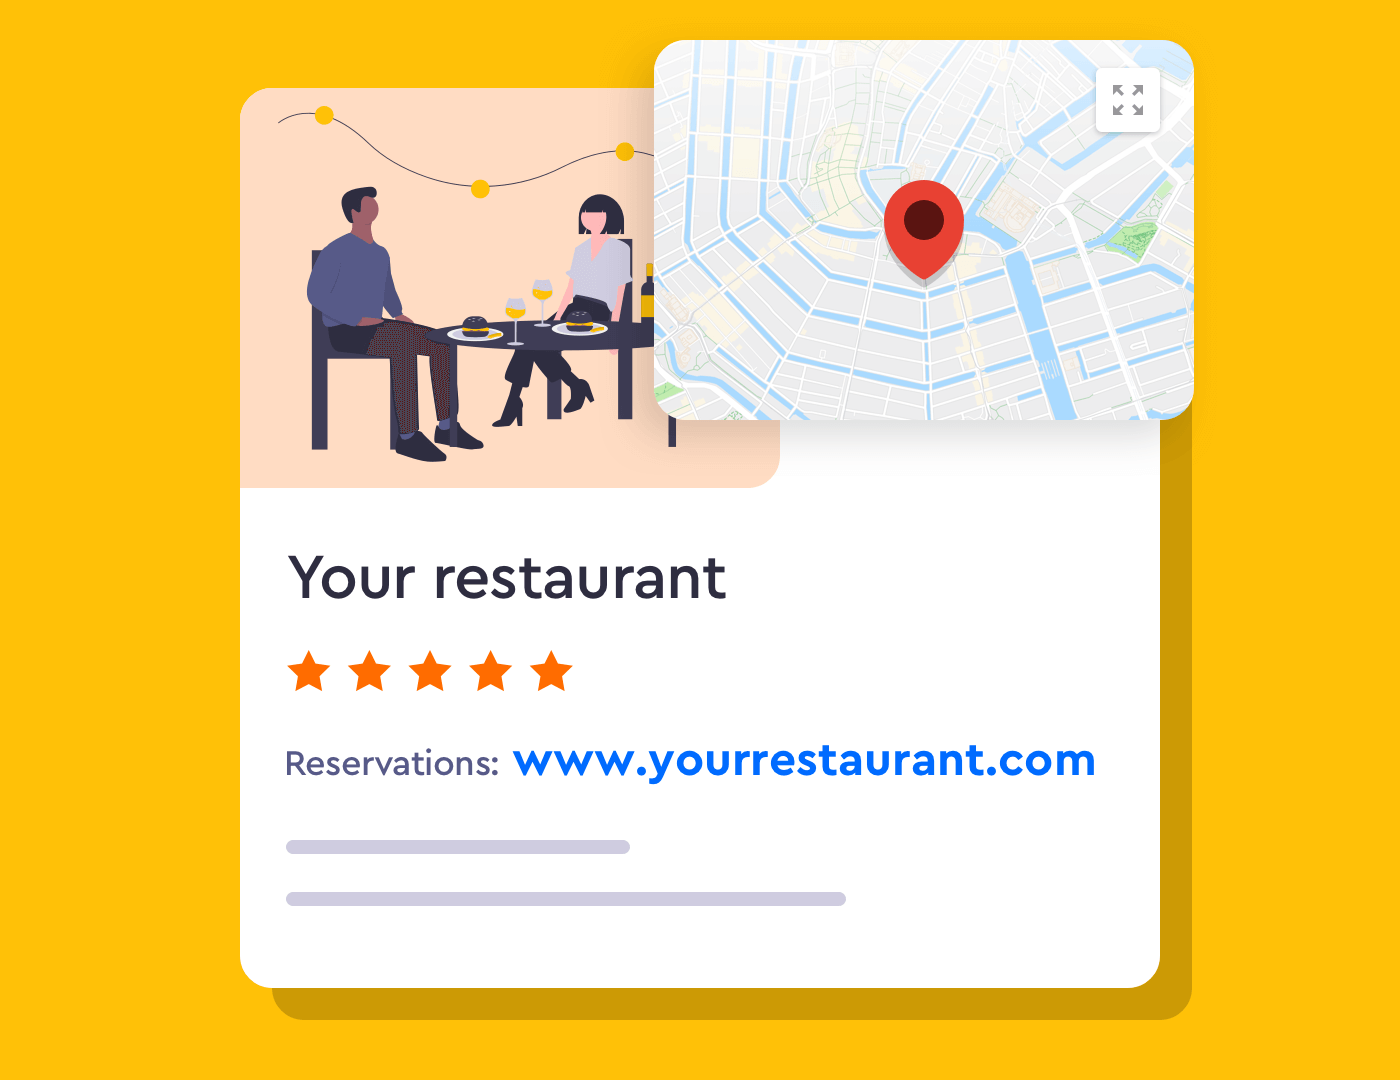 Adding a reservation link on Google